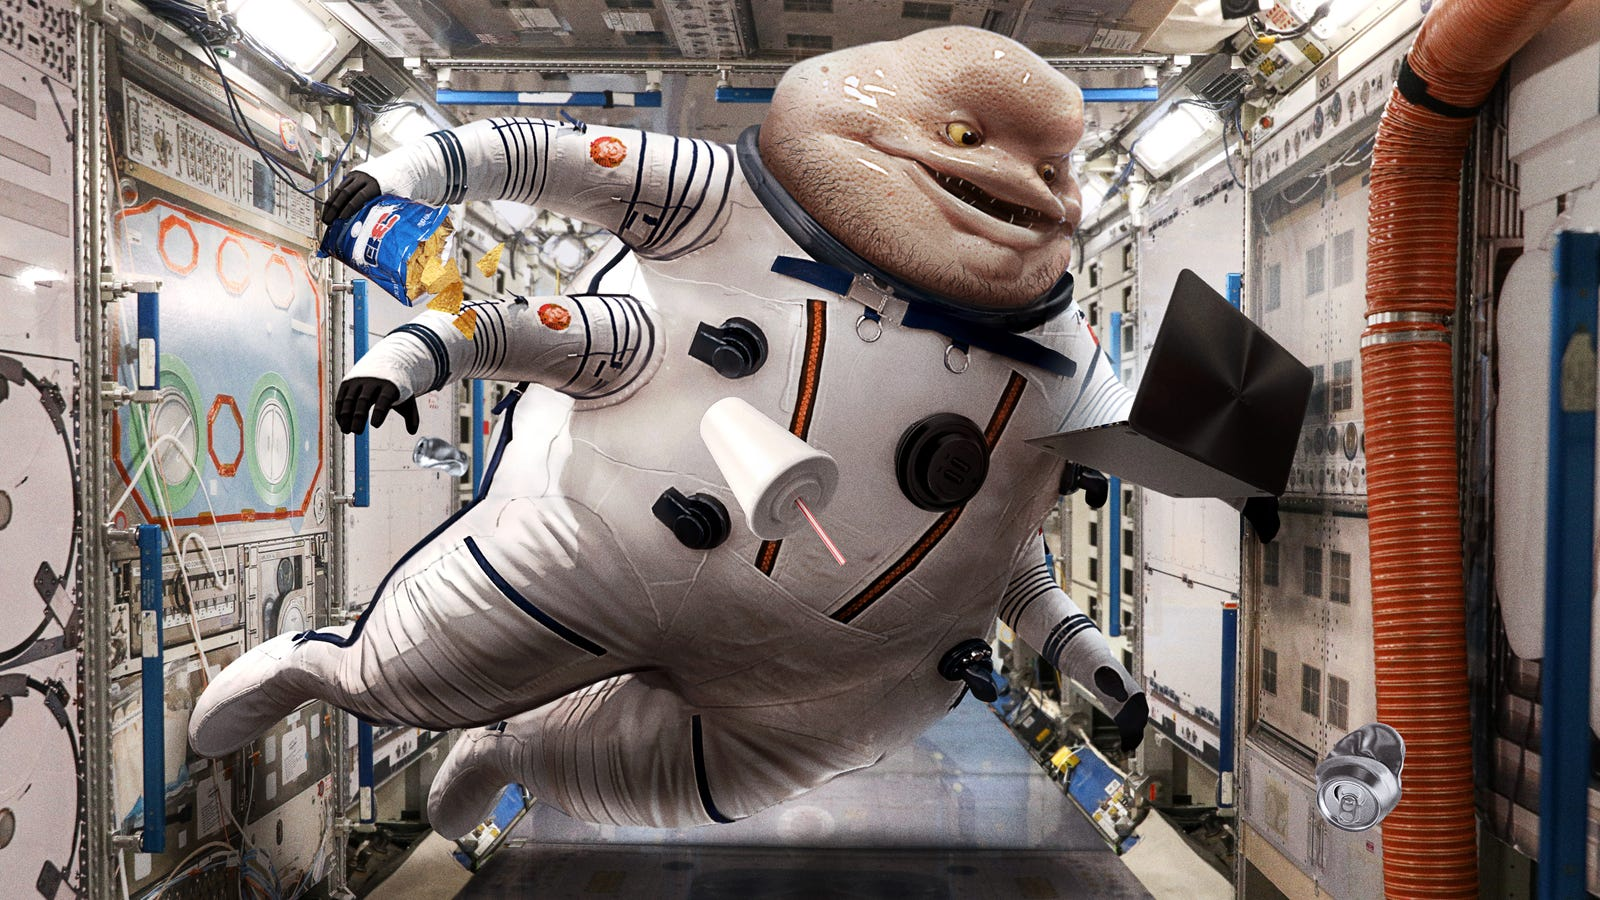 ISS Astronaut Sick Of Sharing Confined Space With Crass, Disgusting Partner From Polaris 8